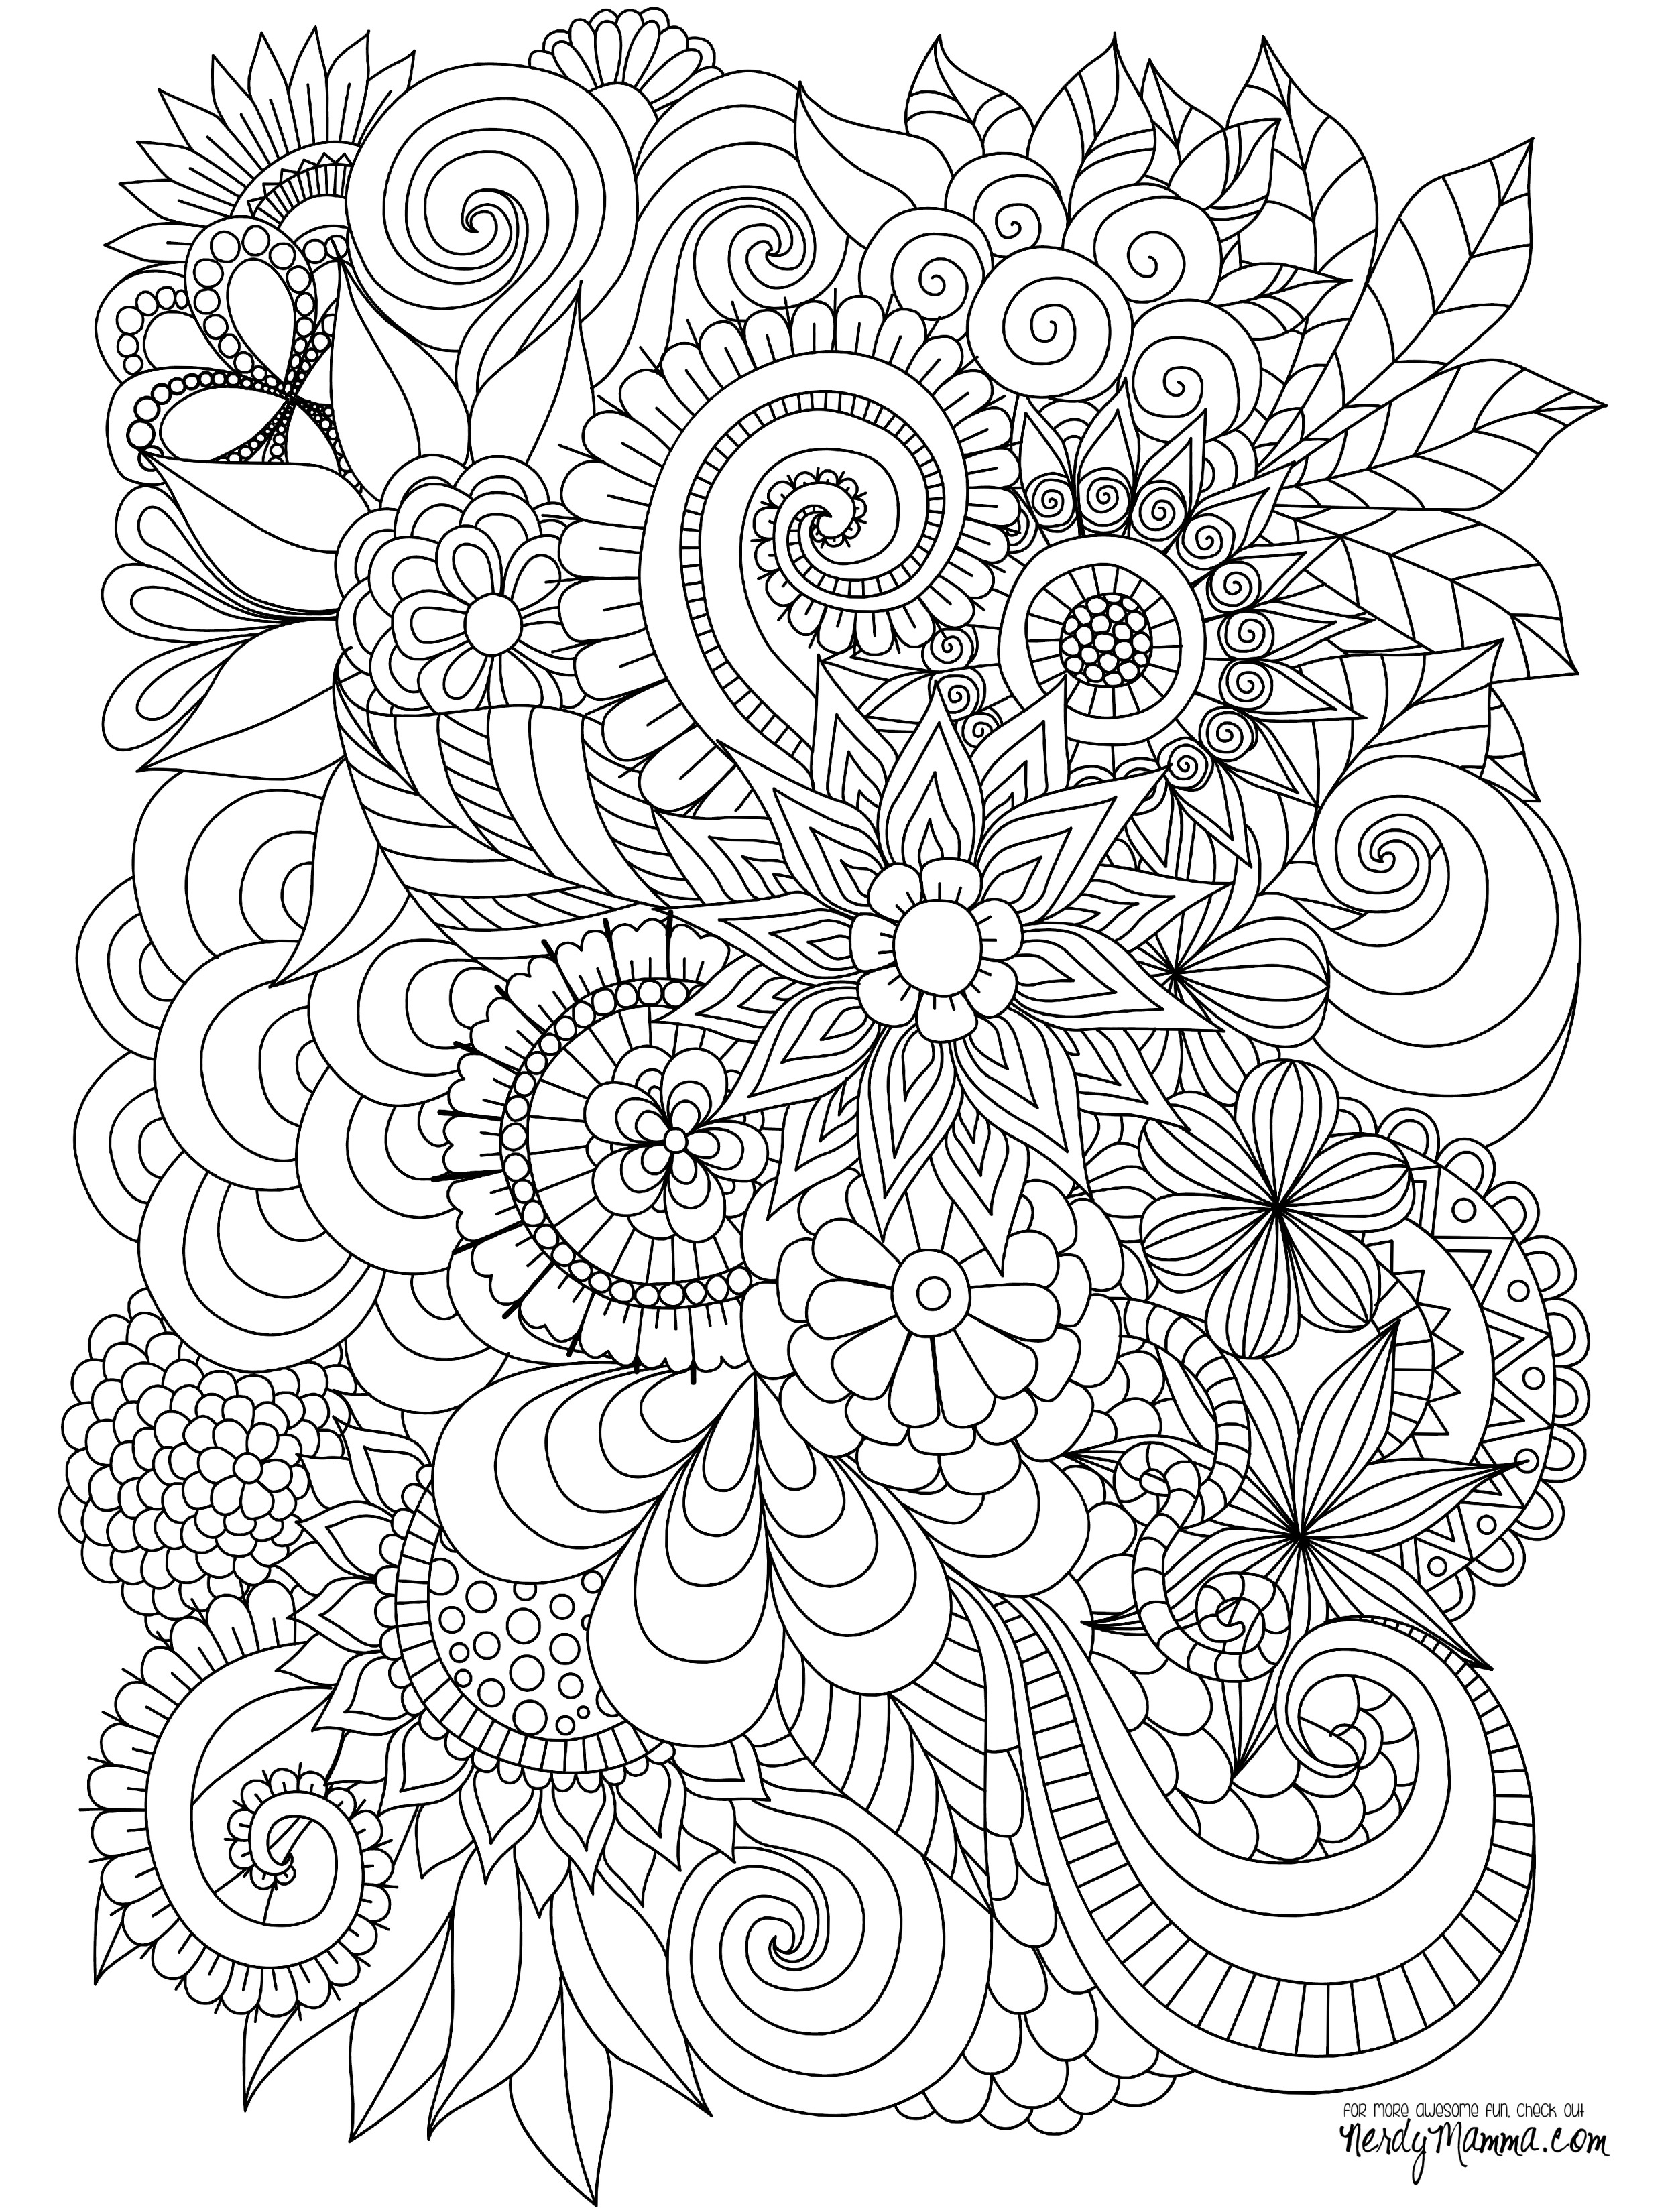 2500x3300 Downloadable Adult Coloring Pages Adult Coloring Pages Pdf Free